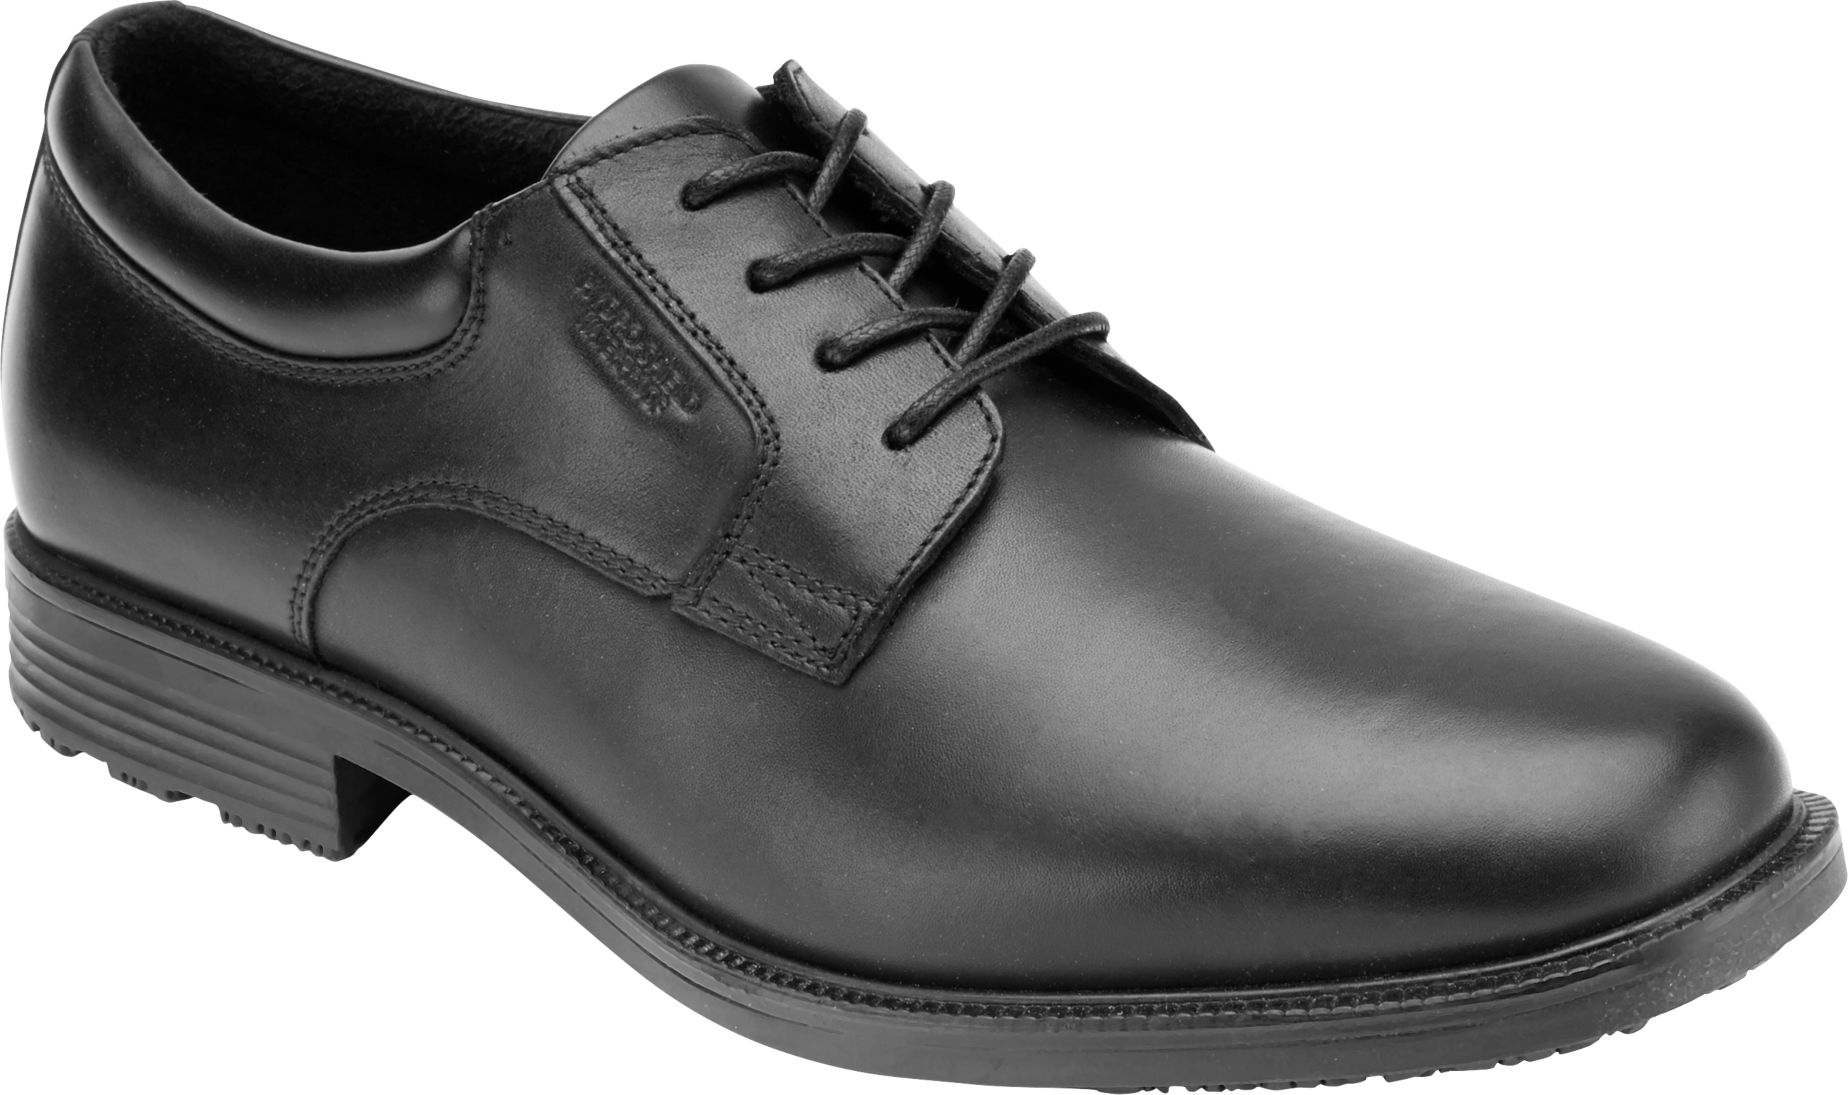 Rockport Shoes | Wingtips, Oxfords & Penny Loafers | JoS. A. Bank ...